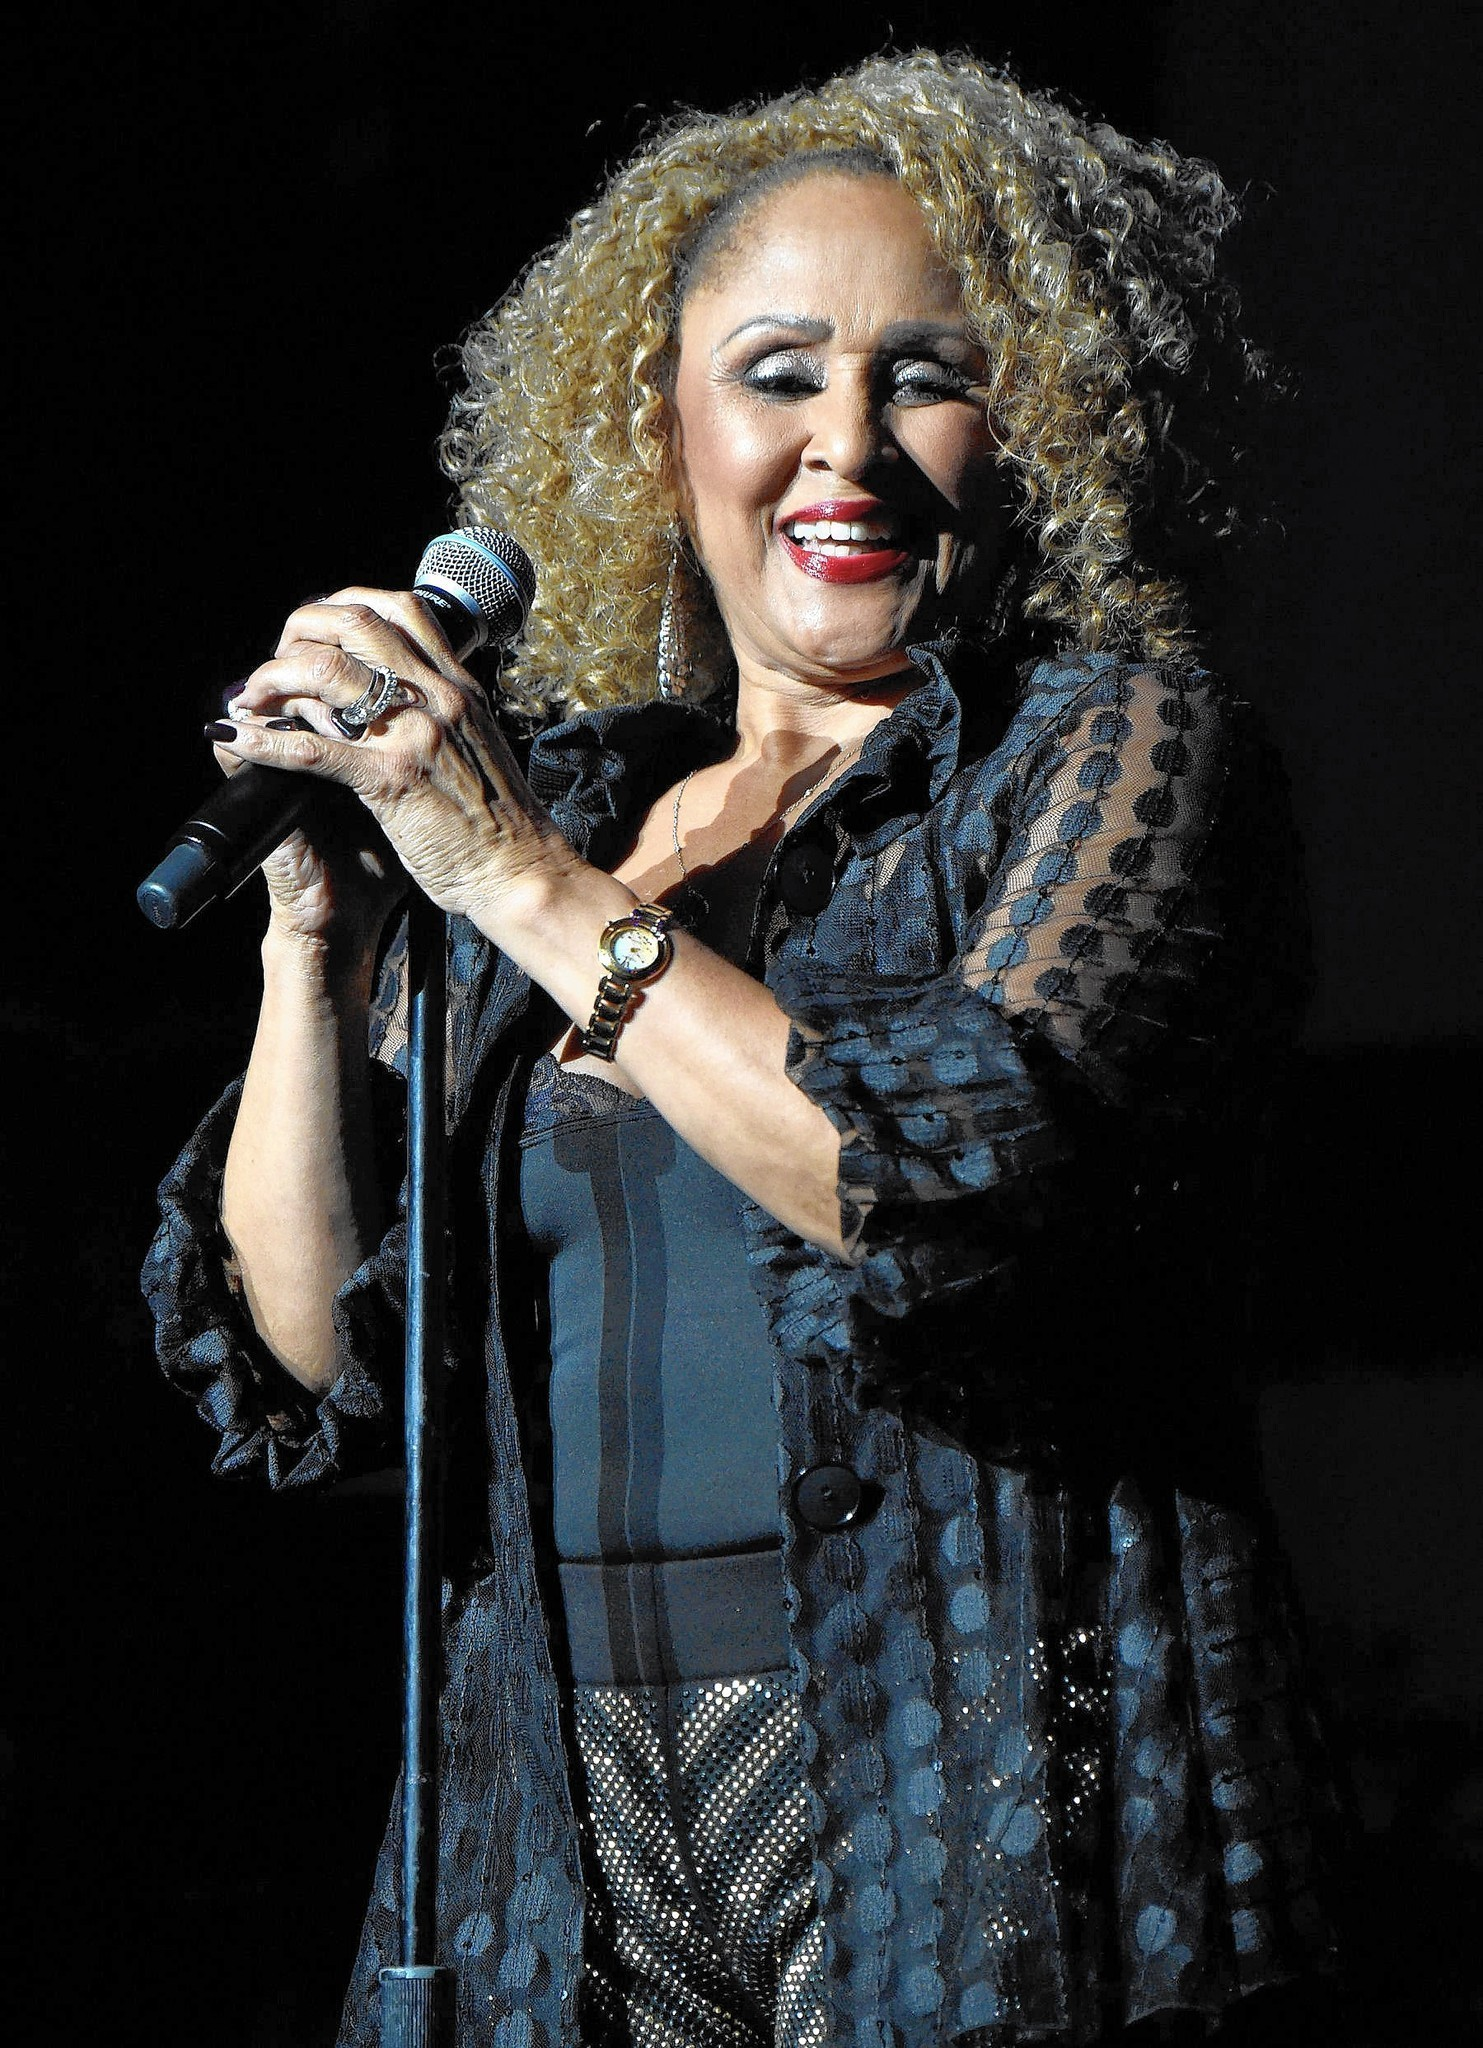 darlene love all alone on christmas lyrics